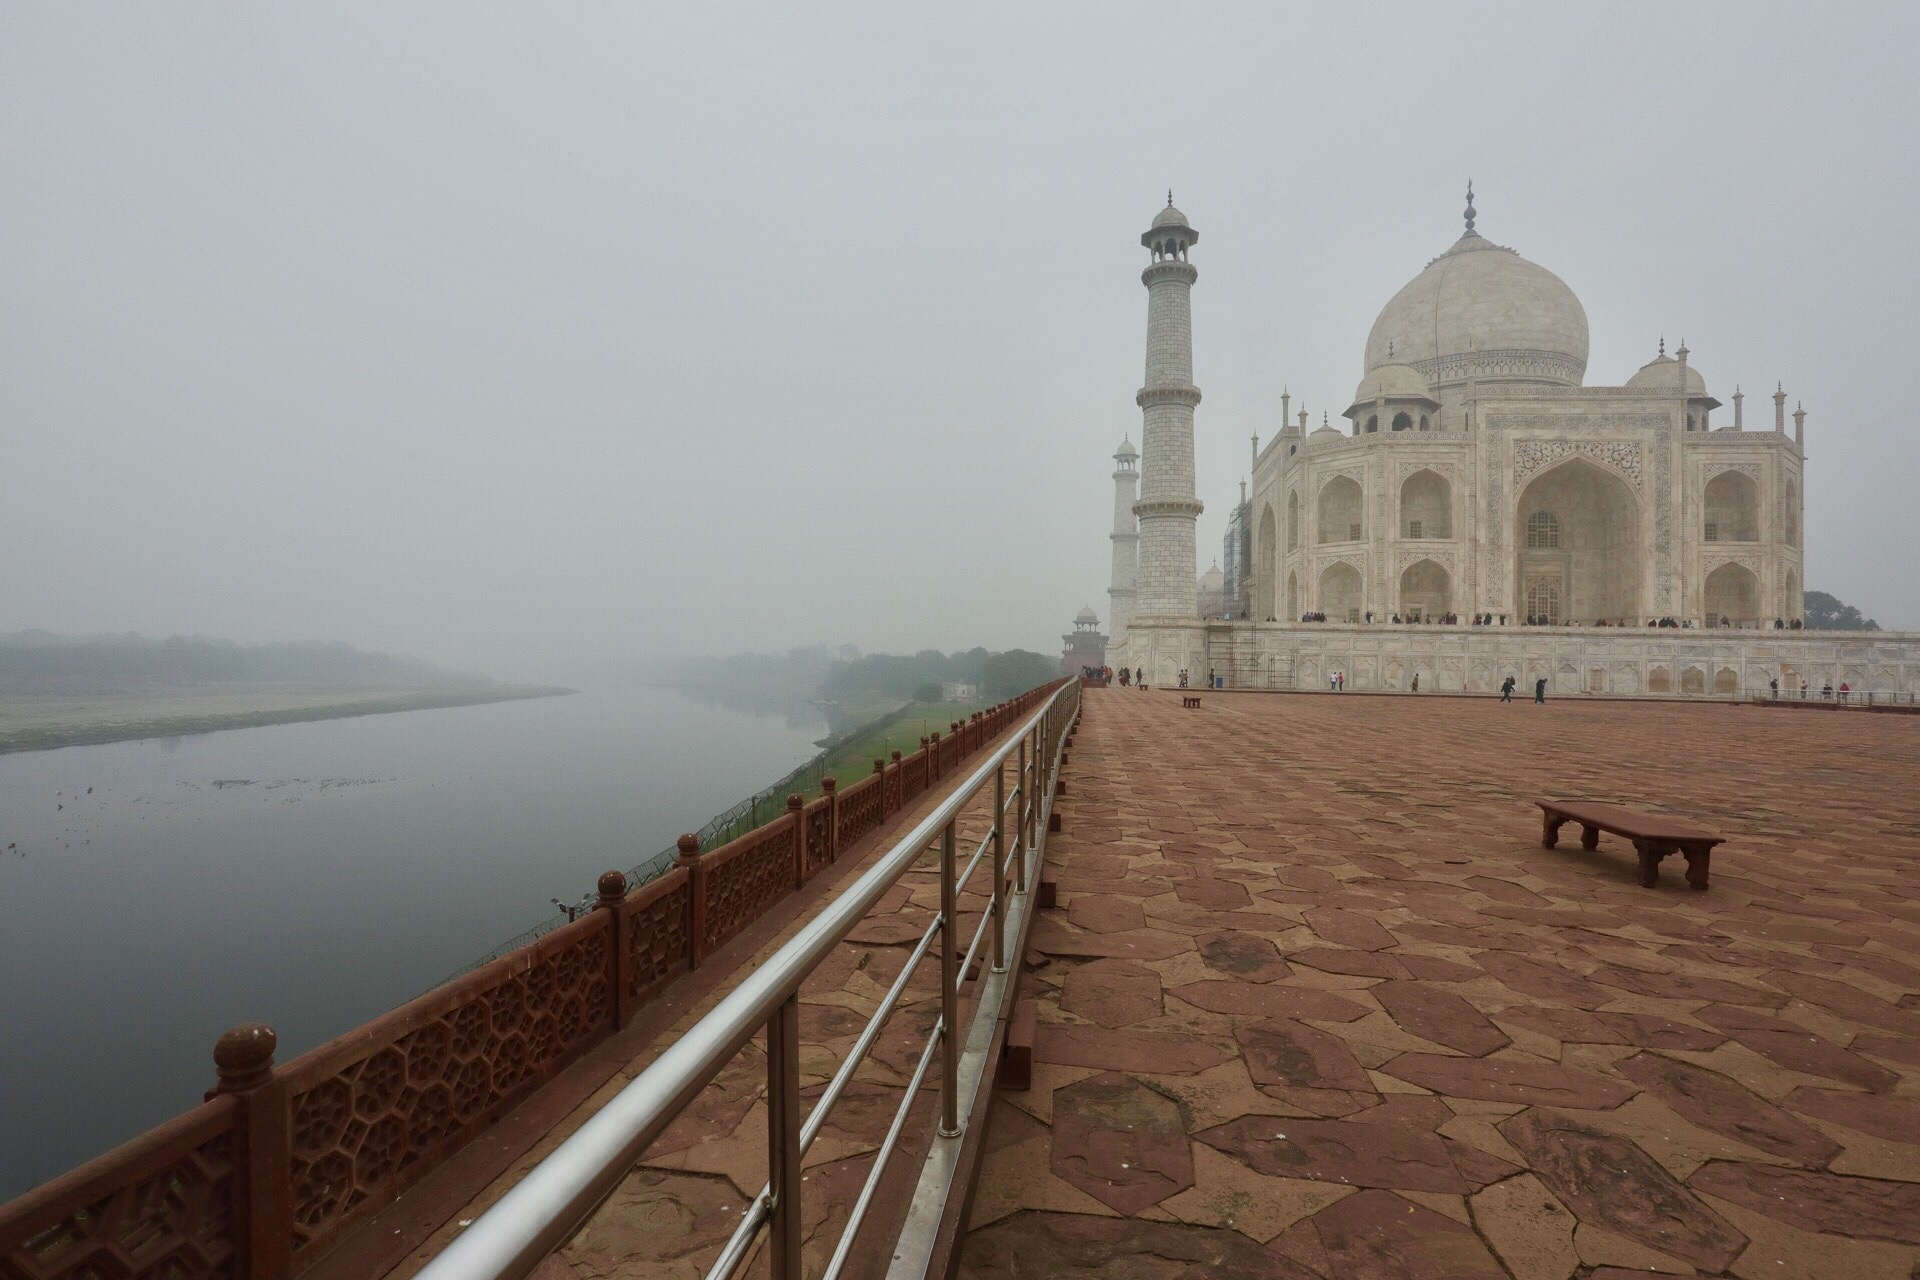 The Taj Mahal stands on the South bank of the Yamuna River in the city of Agra.